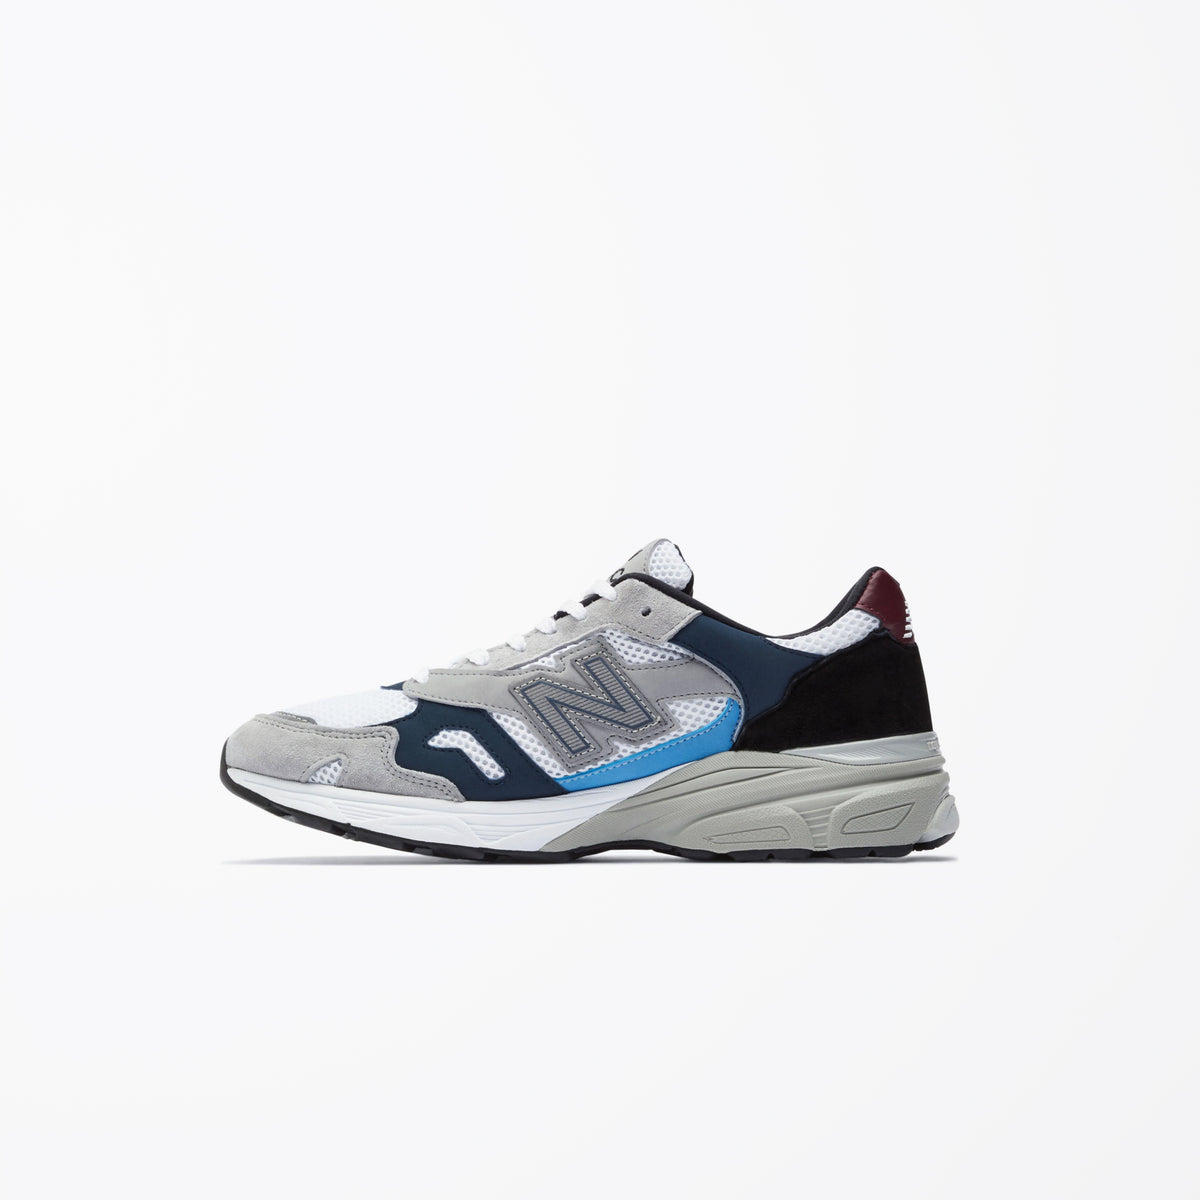 New Balance M920 - Unrecorded